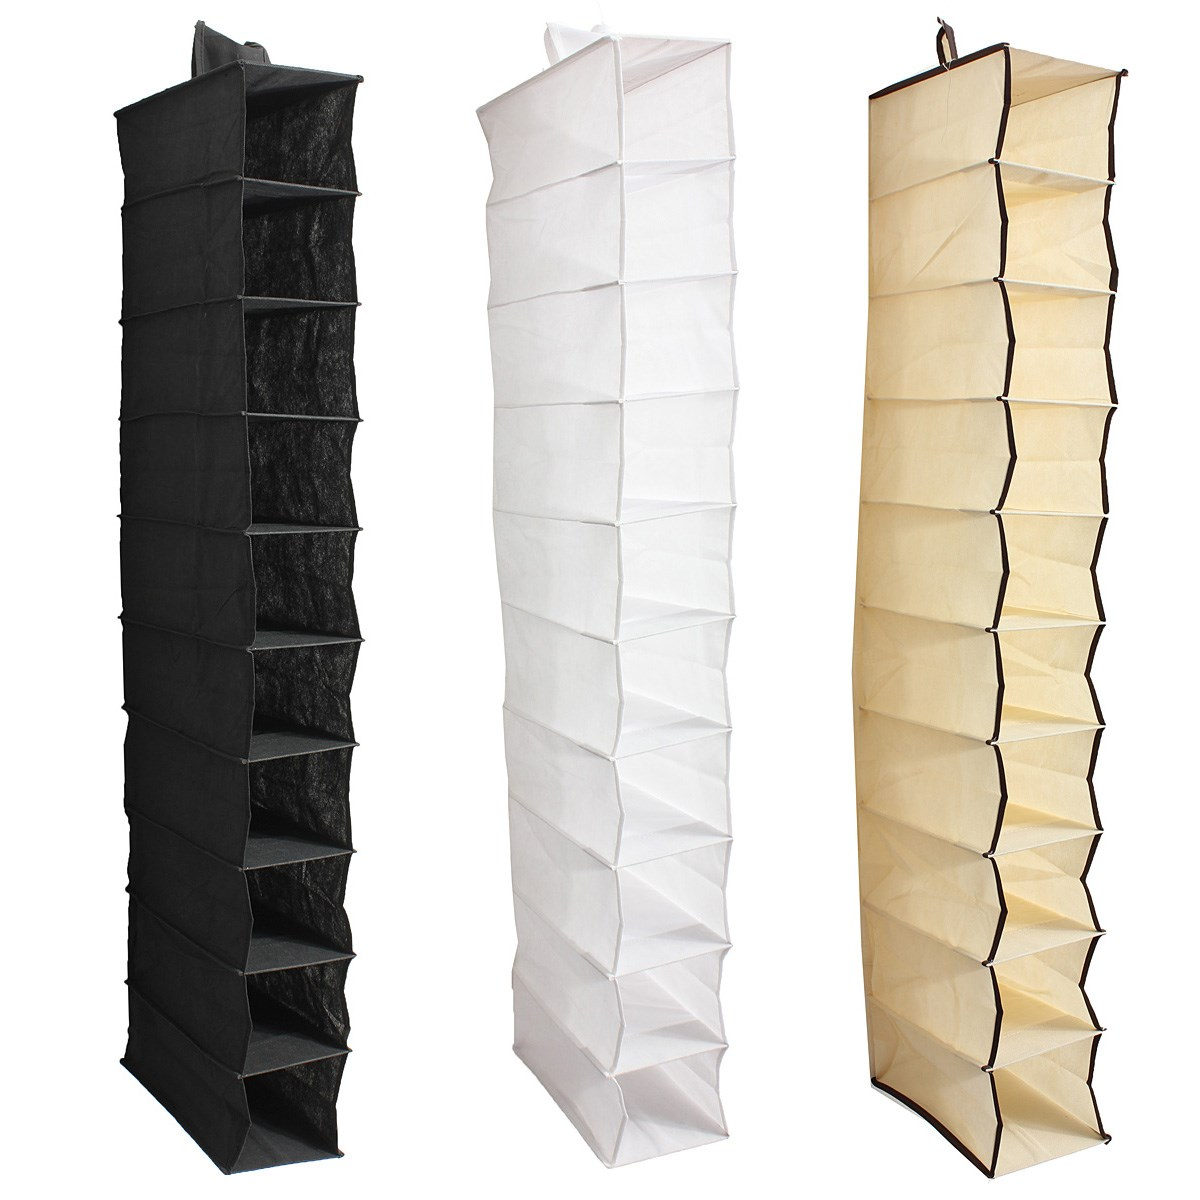 Shoes Garment Organiser Rack Storage Hanging Bag Stand Clothes Holder  Wardrobe Door Behind Household 10 Section In Storage Bags From Home U0026  Garden On ...